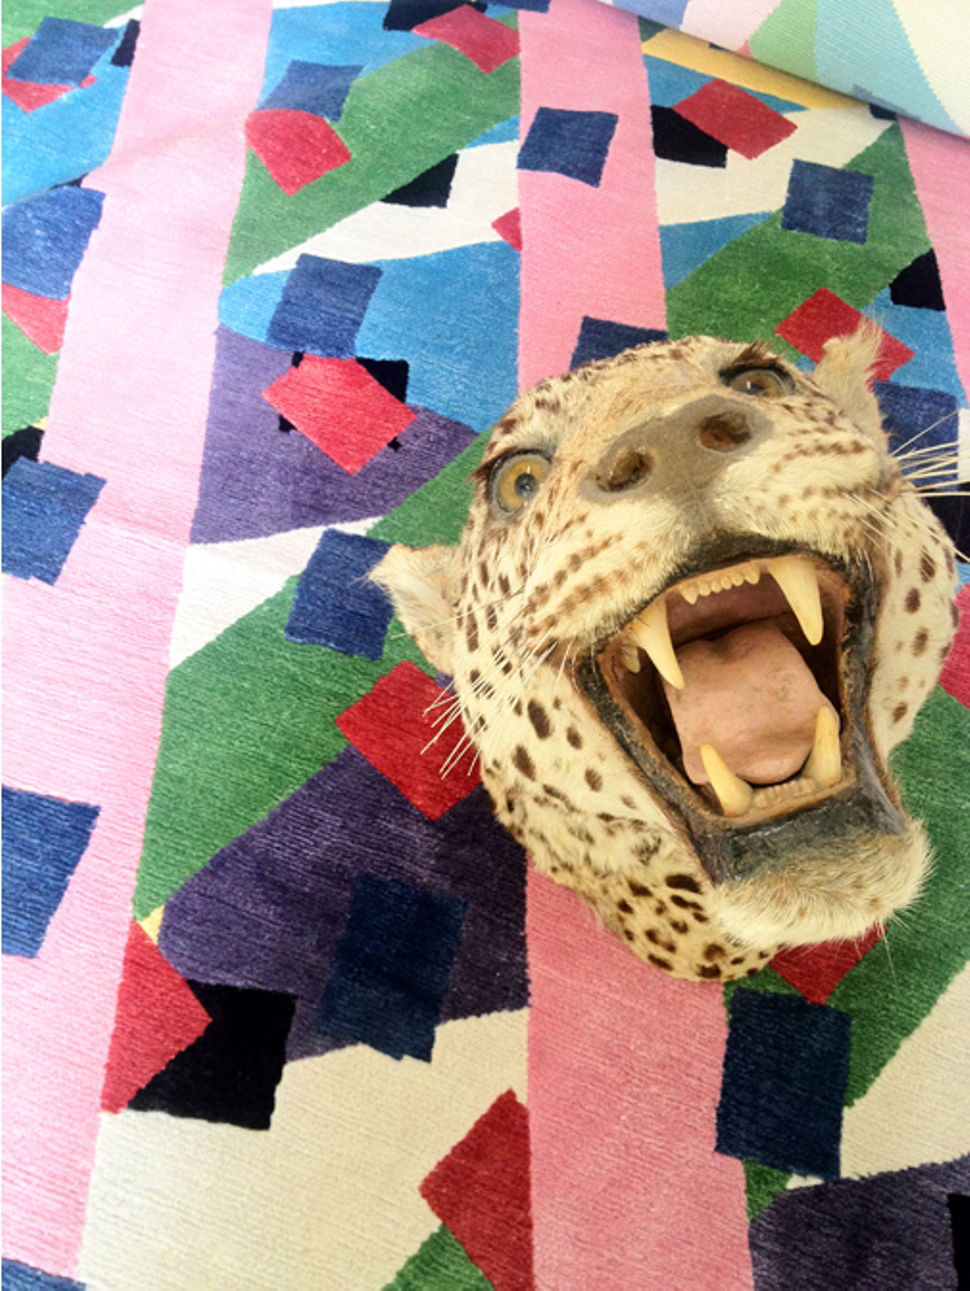 Chillin.   Taxidermy leopard head from Room for Views